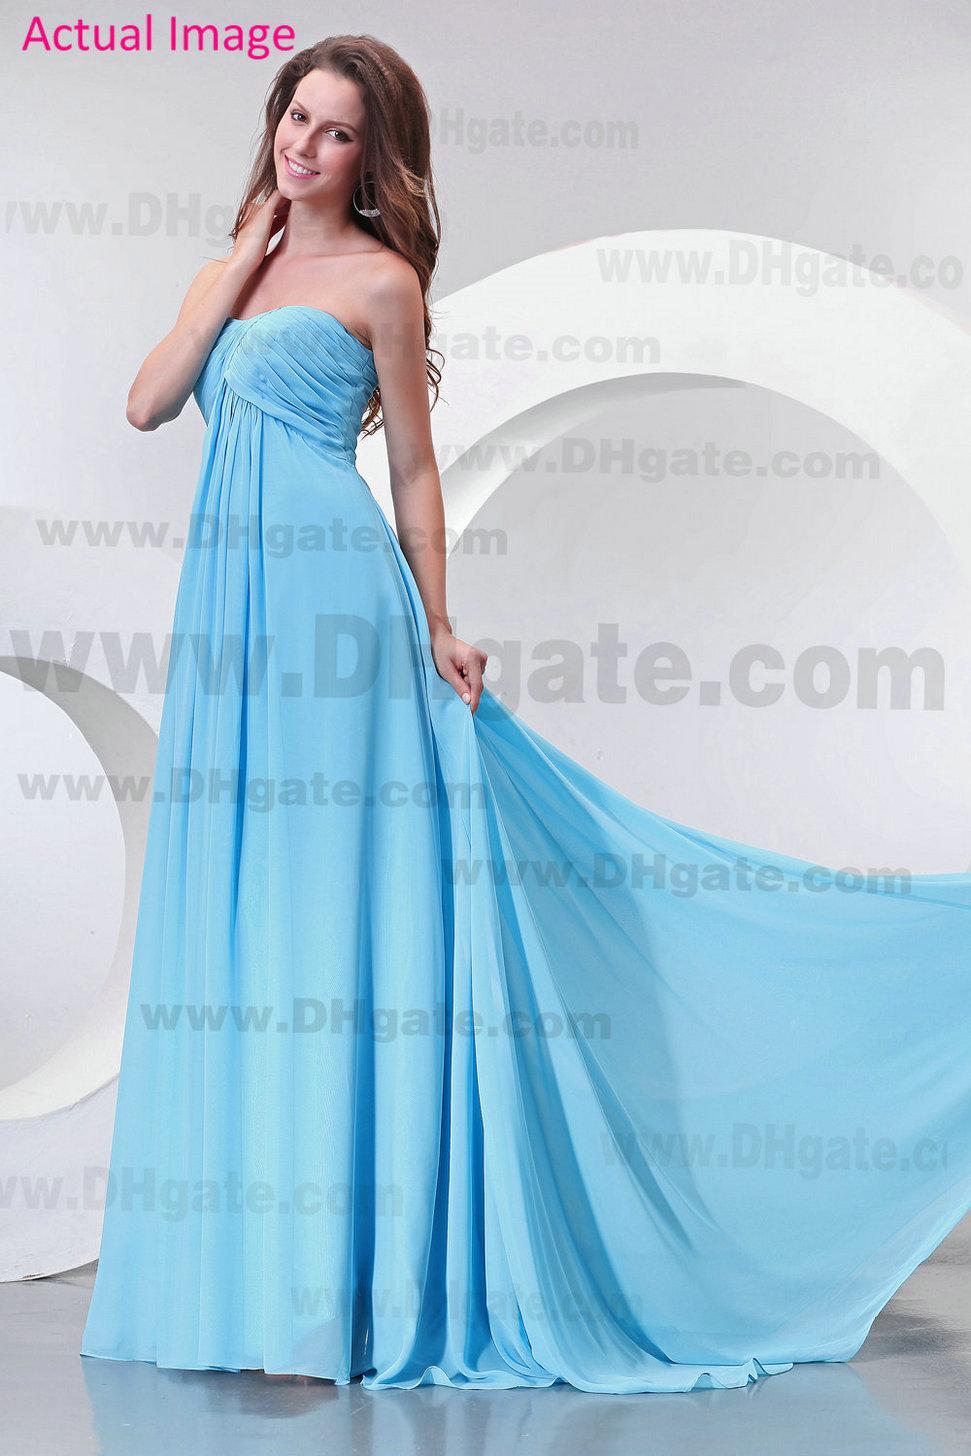 Grecian simple light sky blue 2013 beach chiffon bridesmaid grecian simple light sky blue 2013 beach chiffon bridesmaid dresses sweetheart ruched bodice party dresses dark purple bridesmaid dresses dusky pink ombrellifo Image collections